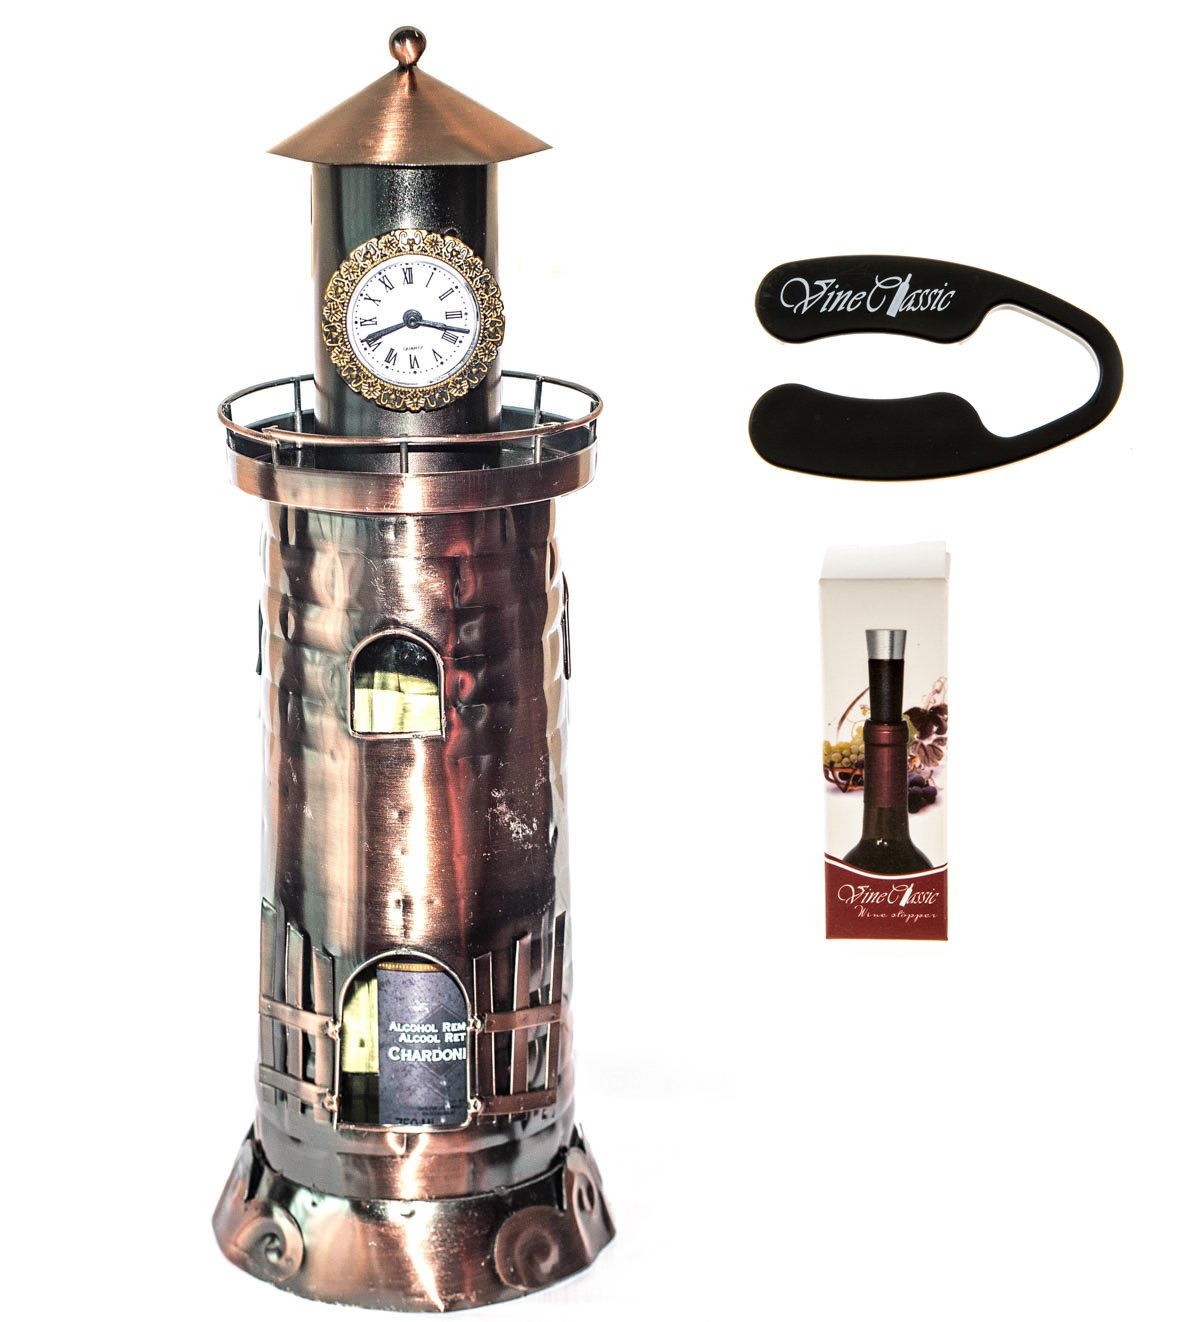 Fabulous Lighthouse with a Clock on Top of the Tower Wine Bottle Holder Plus a Wine Foil Cutter and a Wine Vacuum Stopper by Upscale Innovations